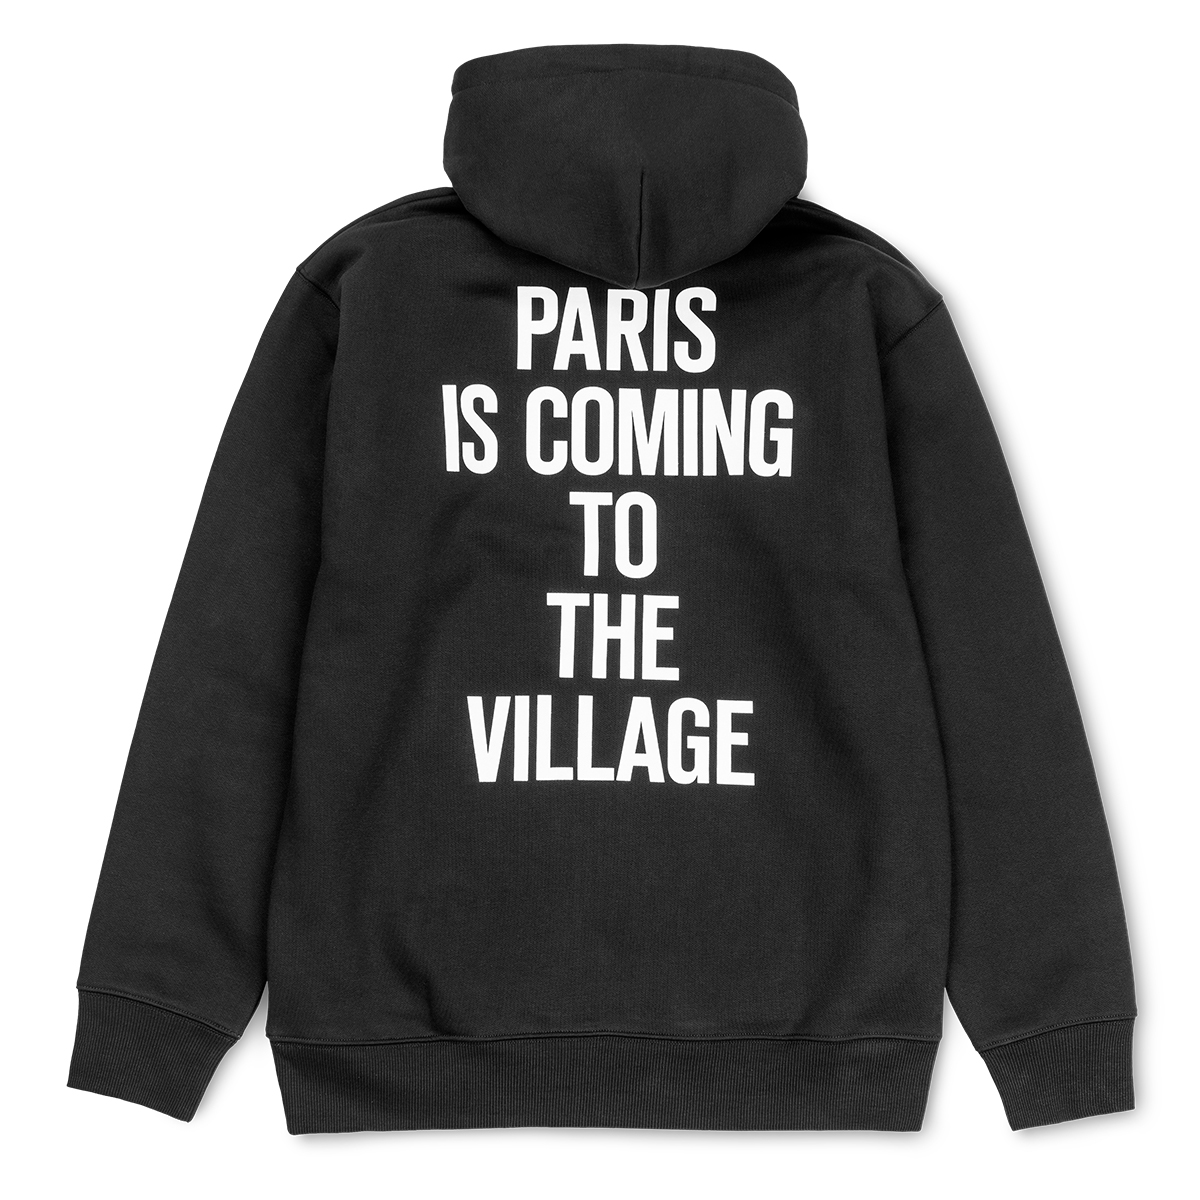 The Village Cry la nuova capsule collection di Carhartt WIP | Collater.al